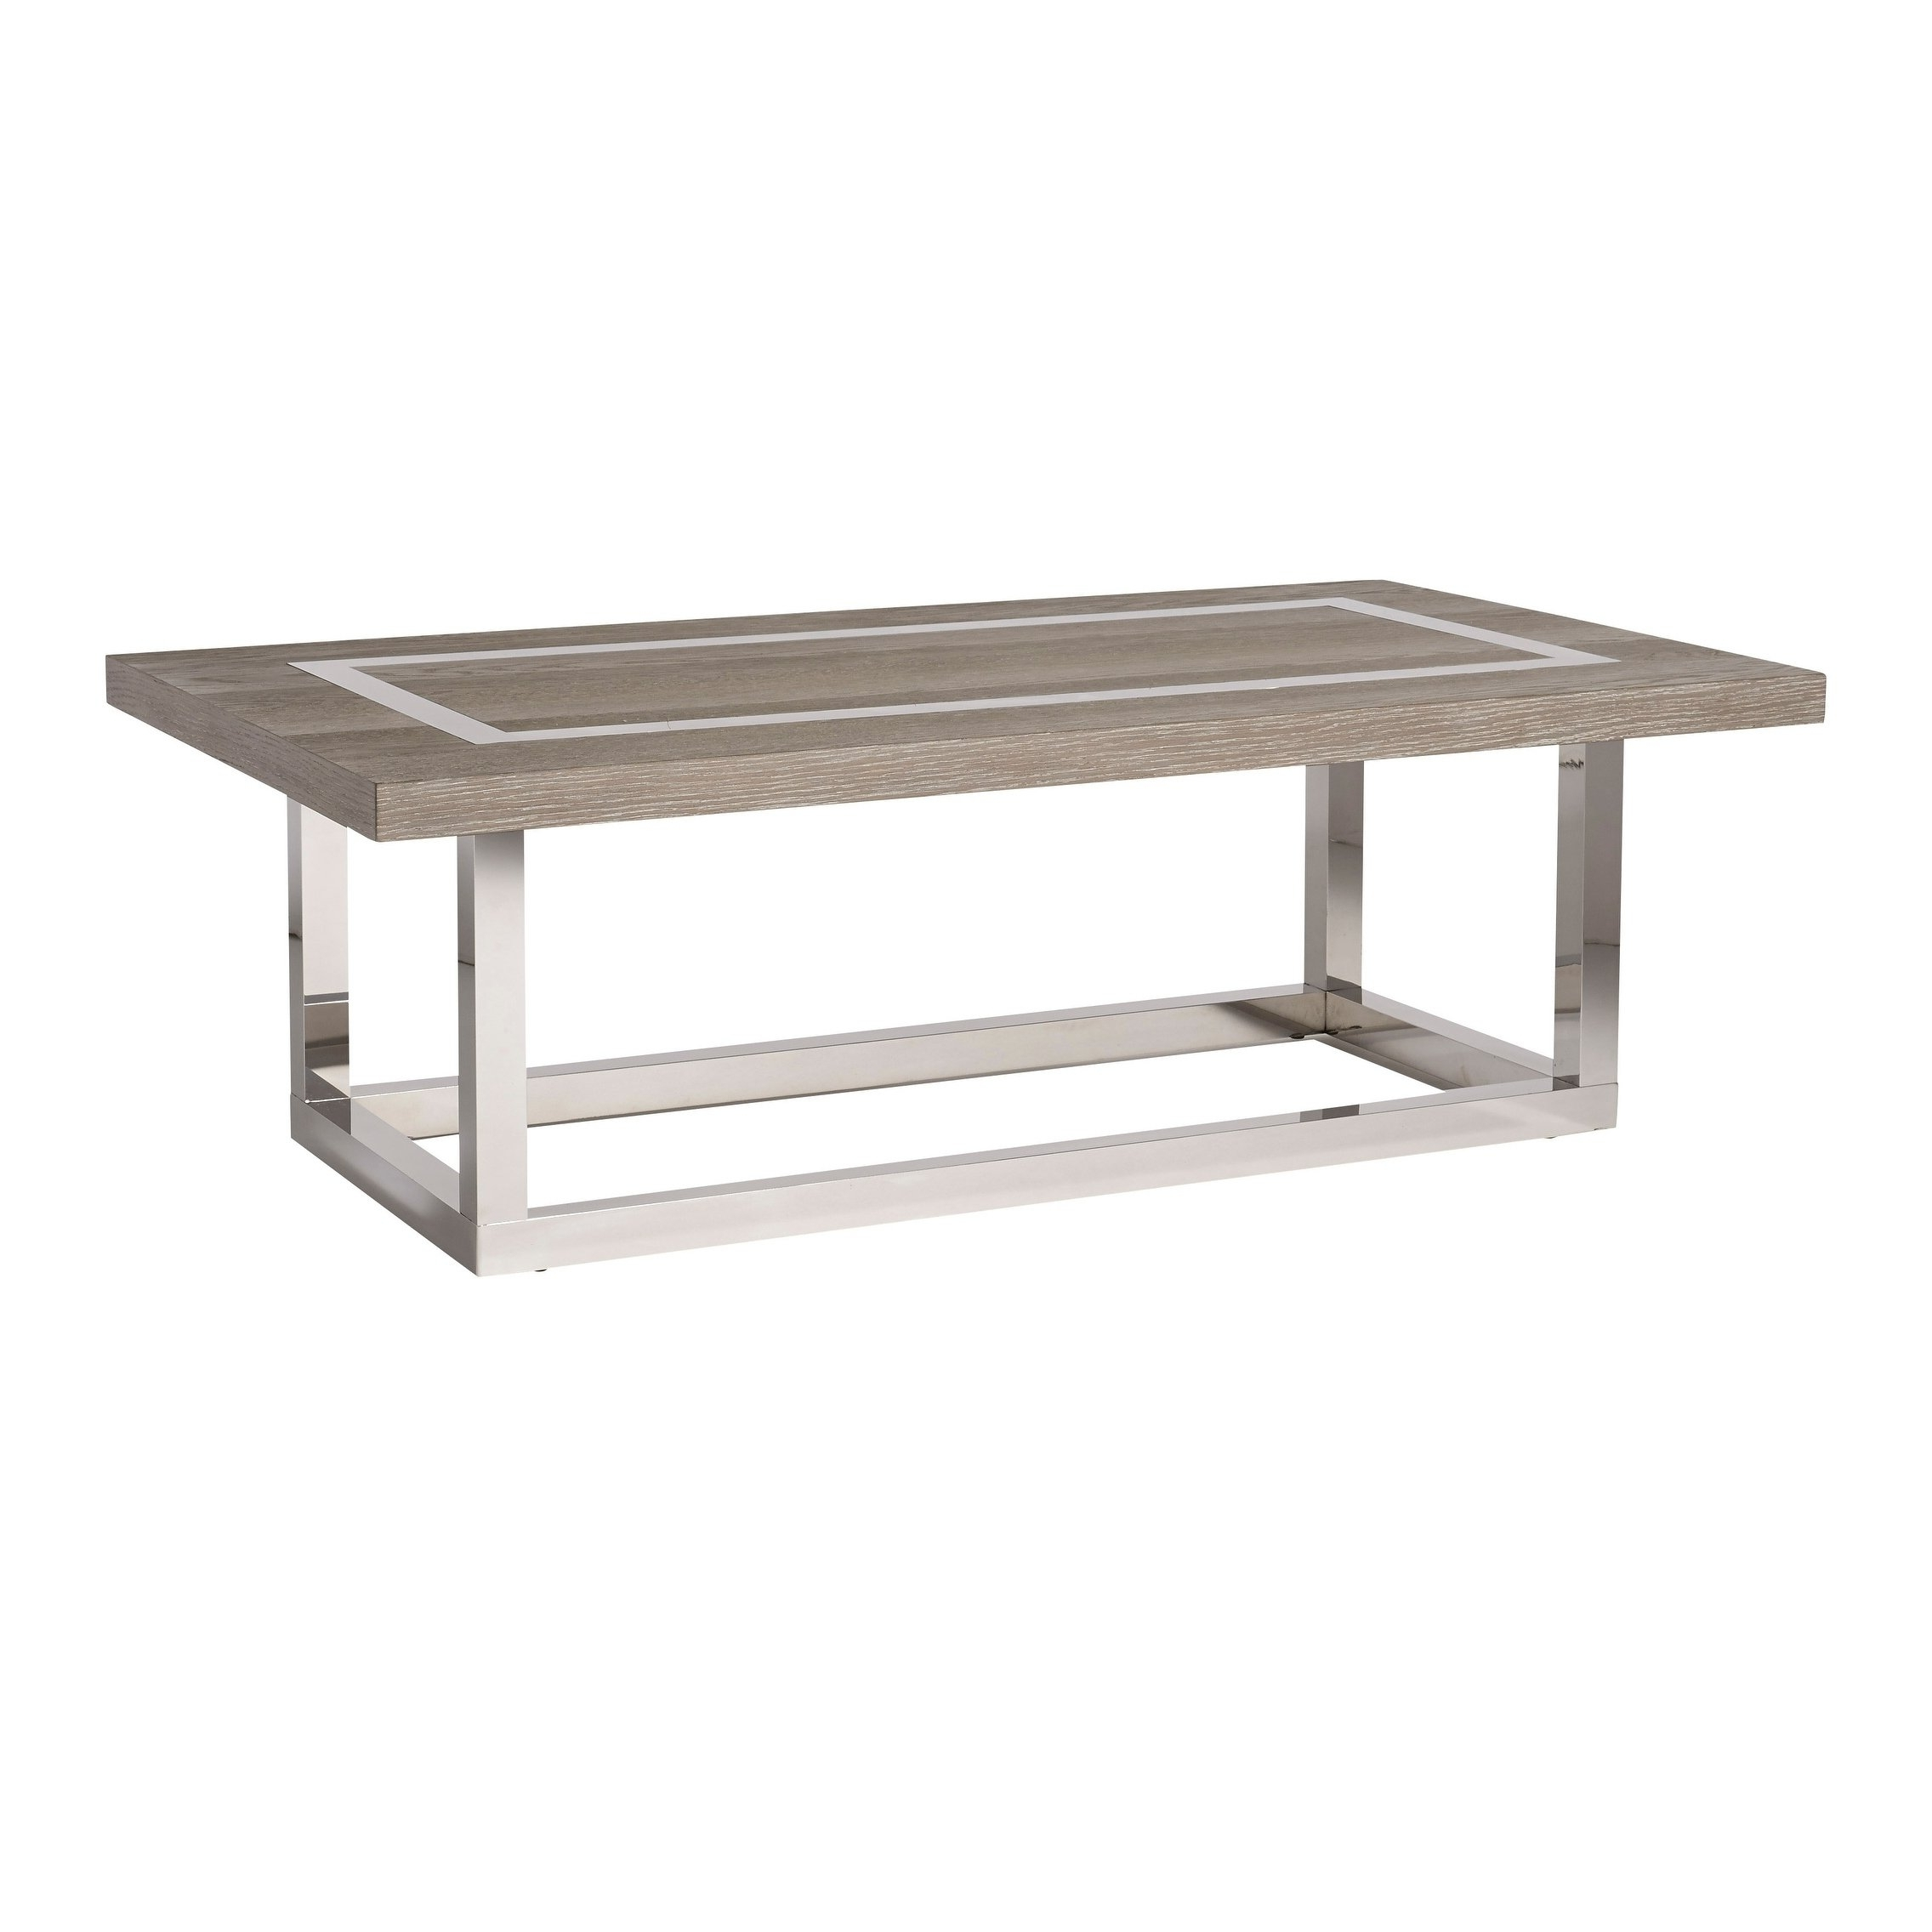 2018 Wyatt Cocktail Tables With Shop Modern Flint And Stainless Steel Rectangle Wyatt Cocktail Table (View 1 of 20)